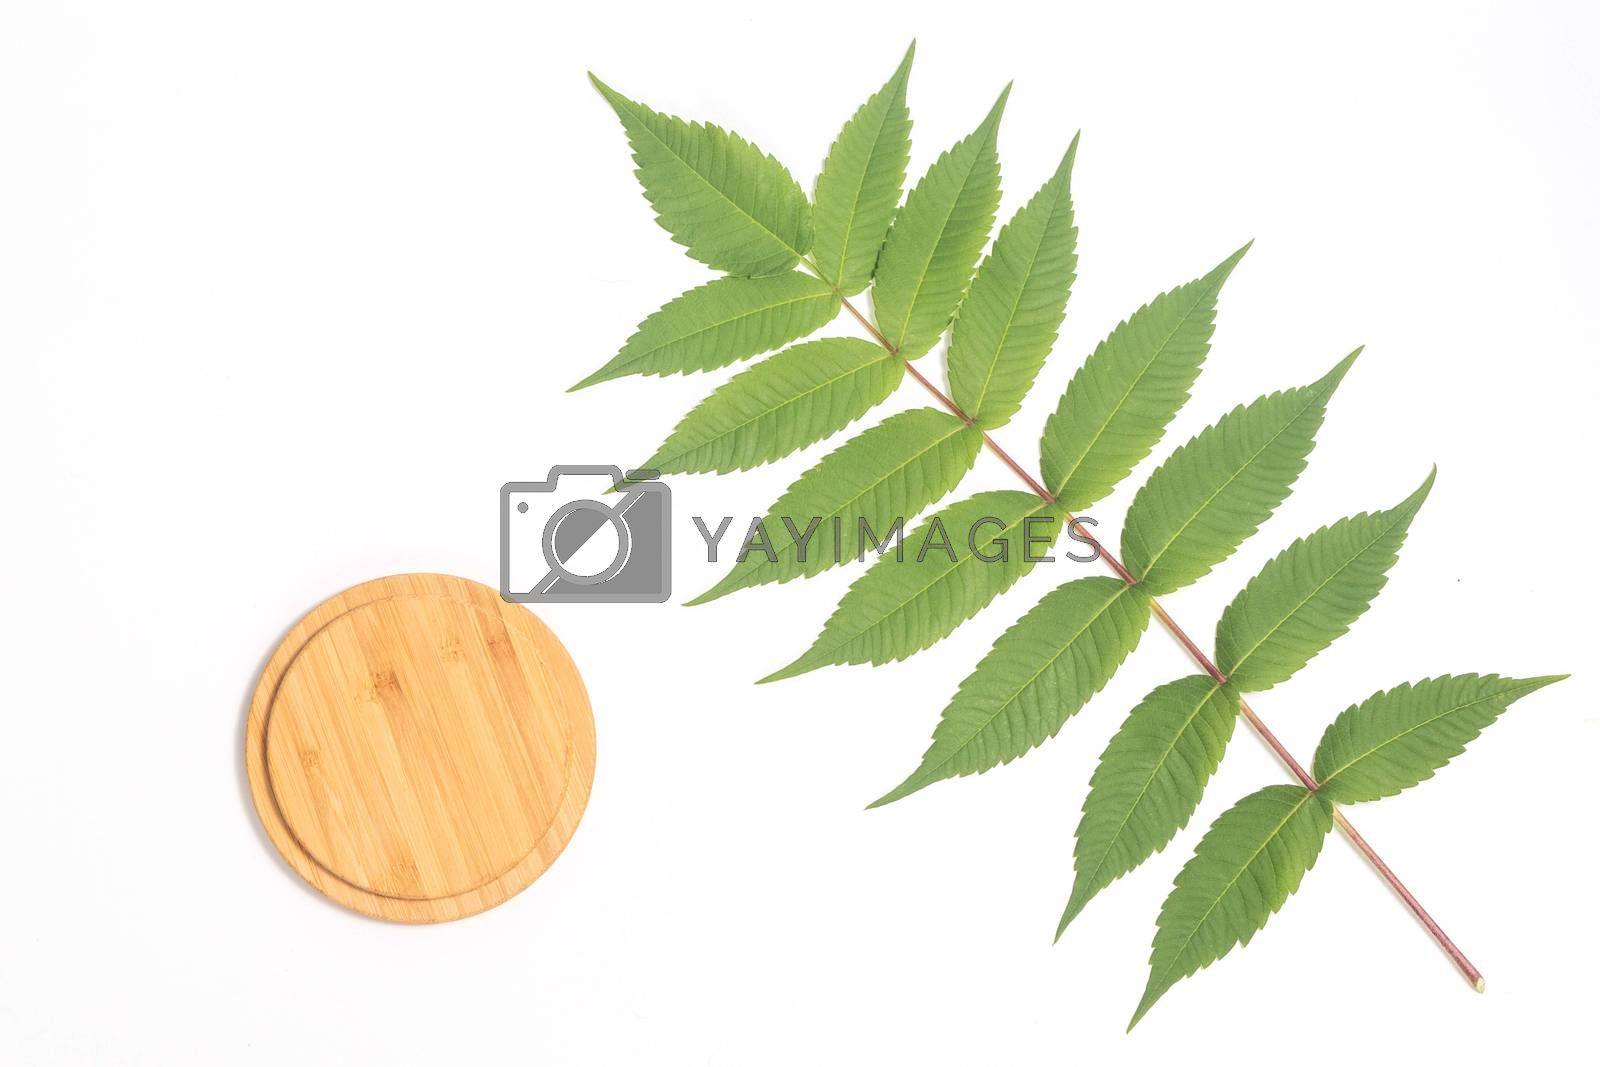 Bamboo Cutting Board with green leaf white whalnu on white background. Eco friendly housekeeping concept